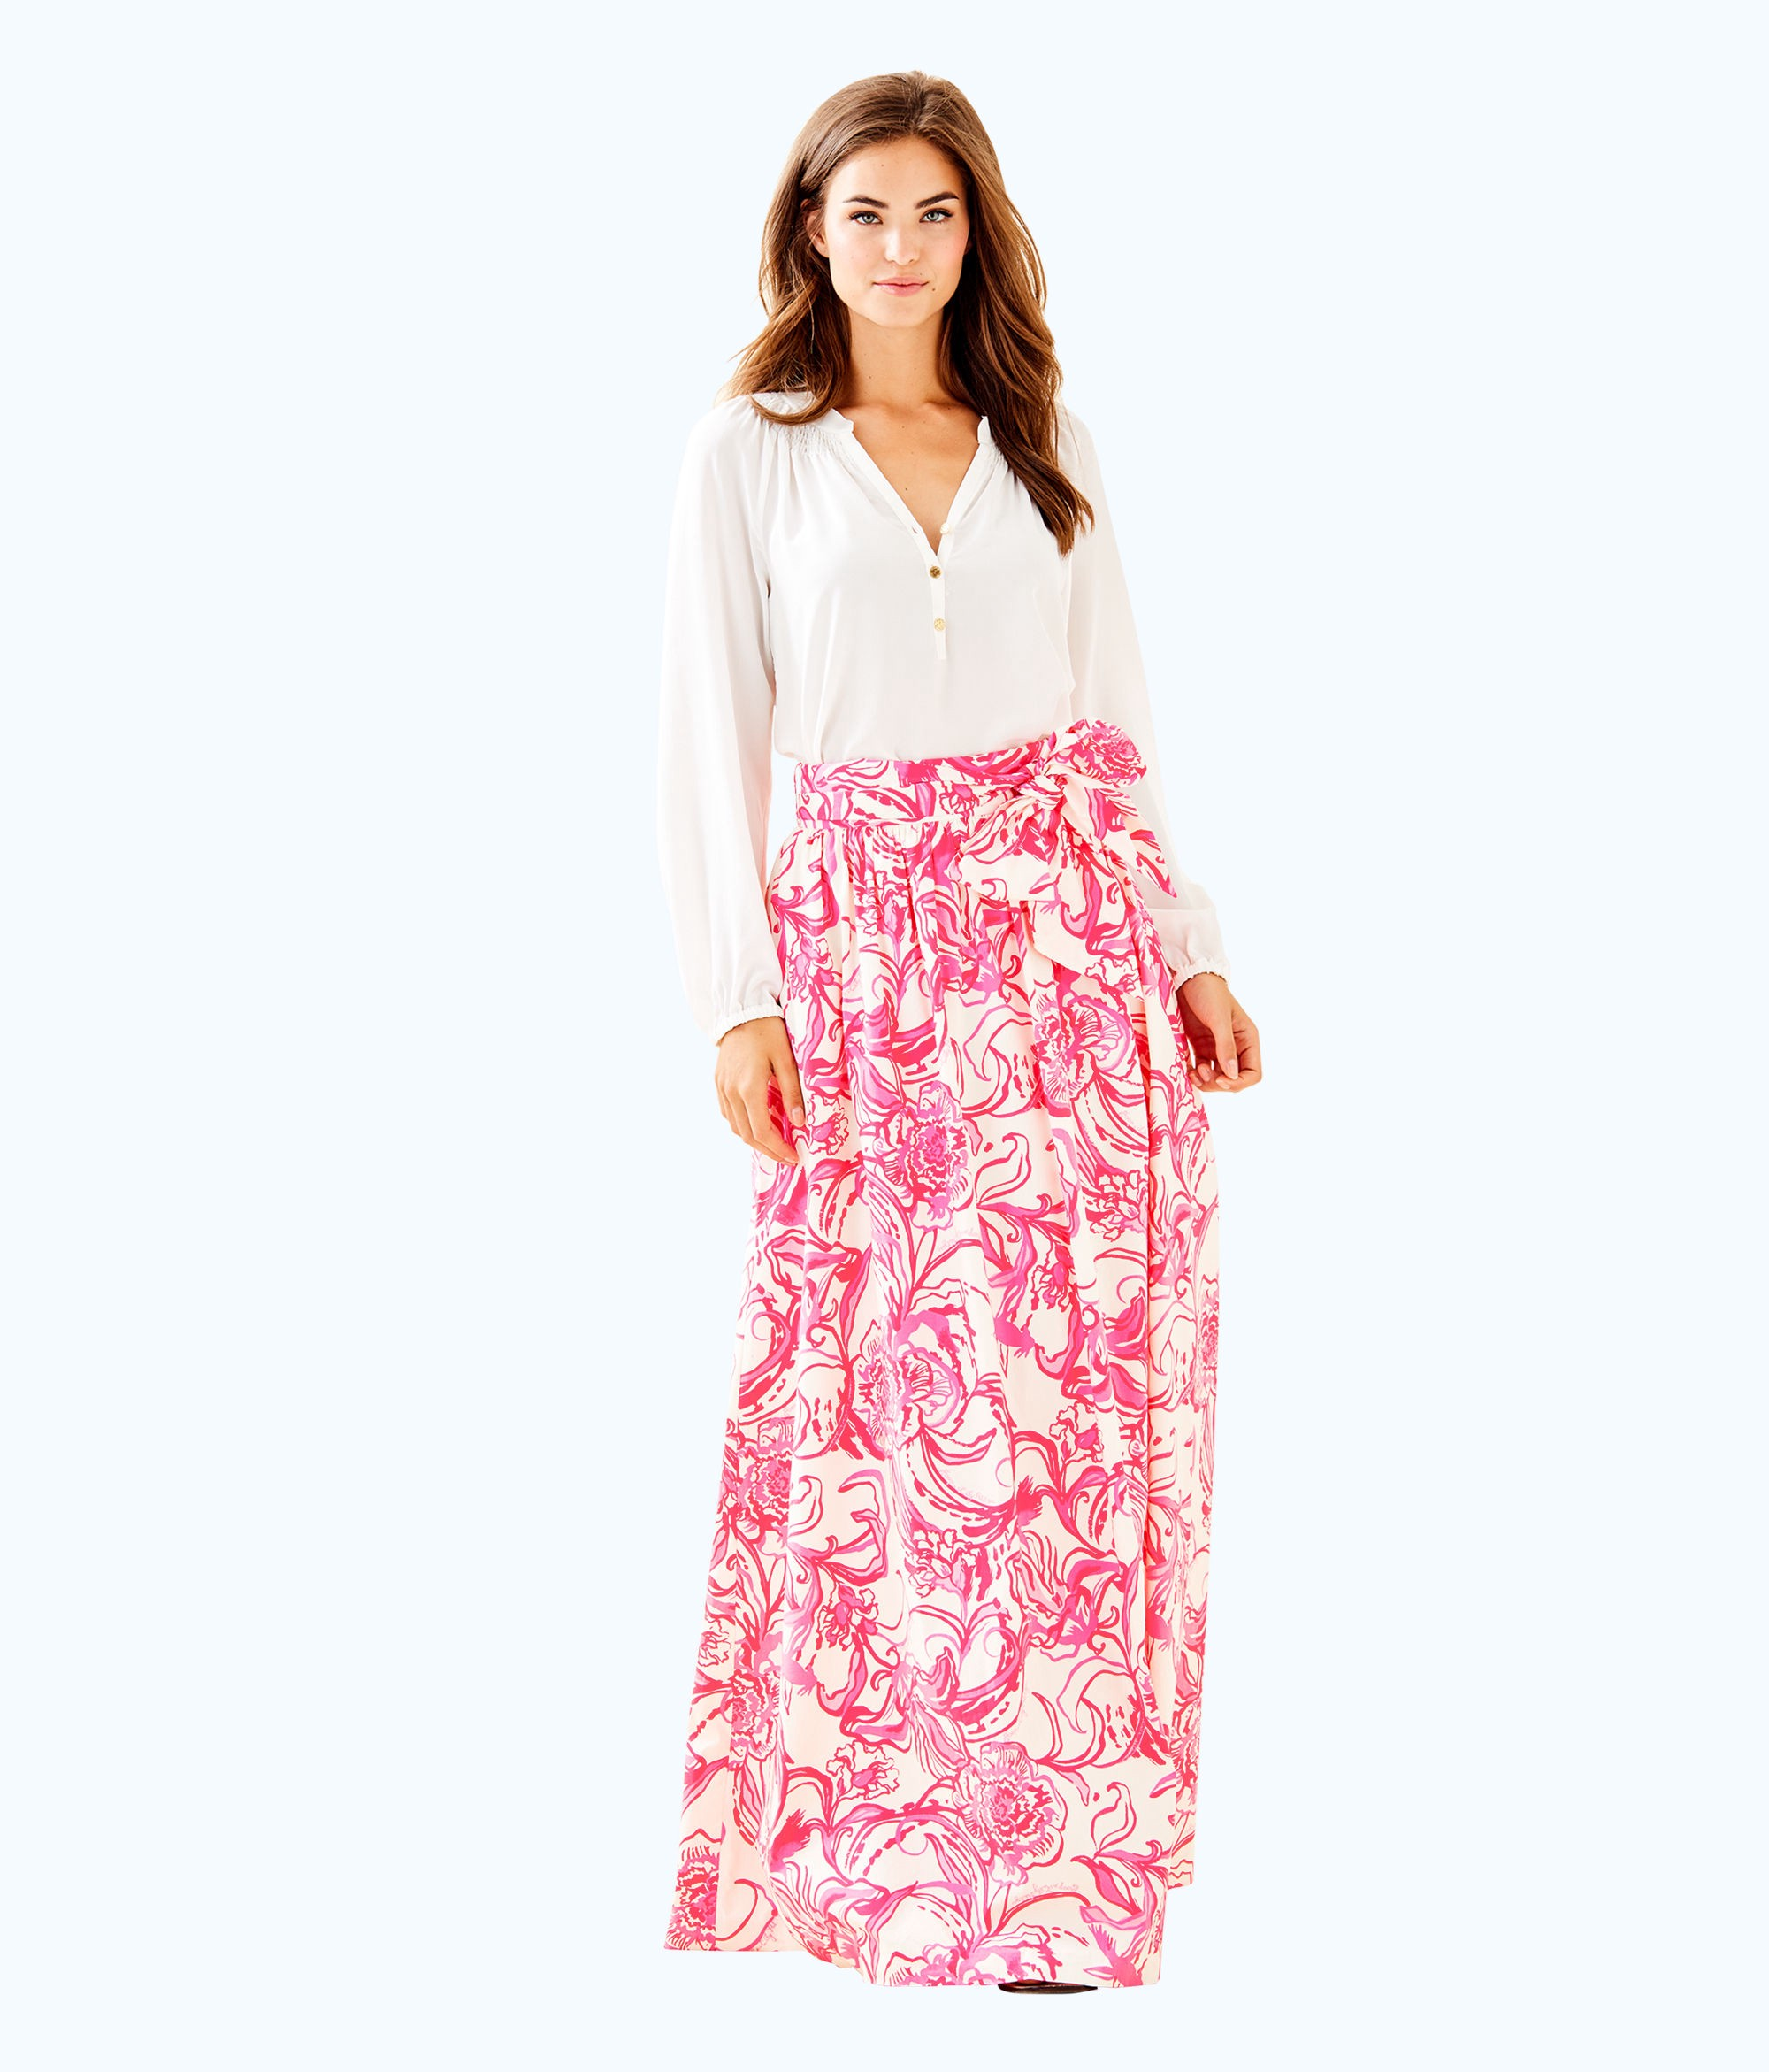 91849d3568 Lilly Pulitzer Goop X Maxi Skirt - 00 | Products | Lilly pulitzer ...